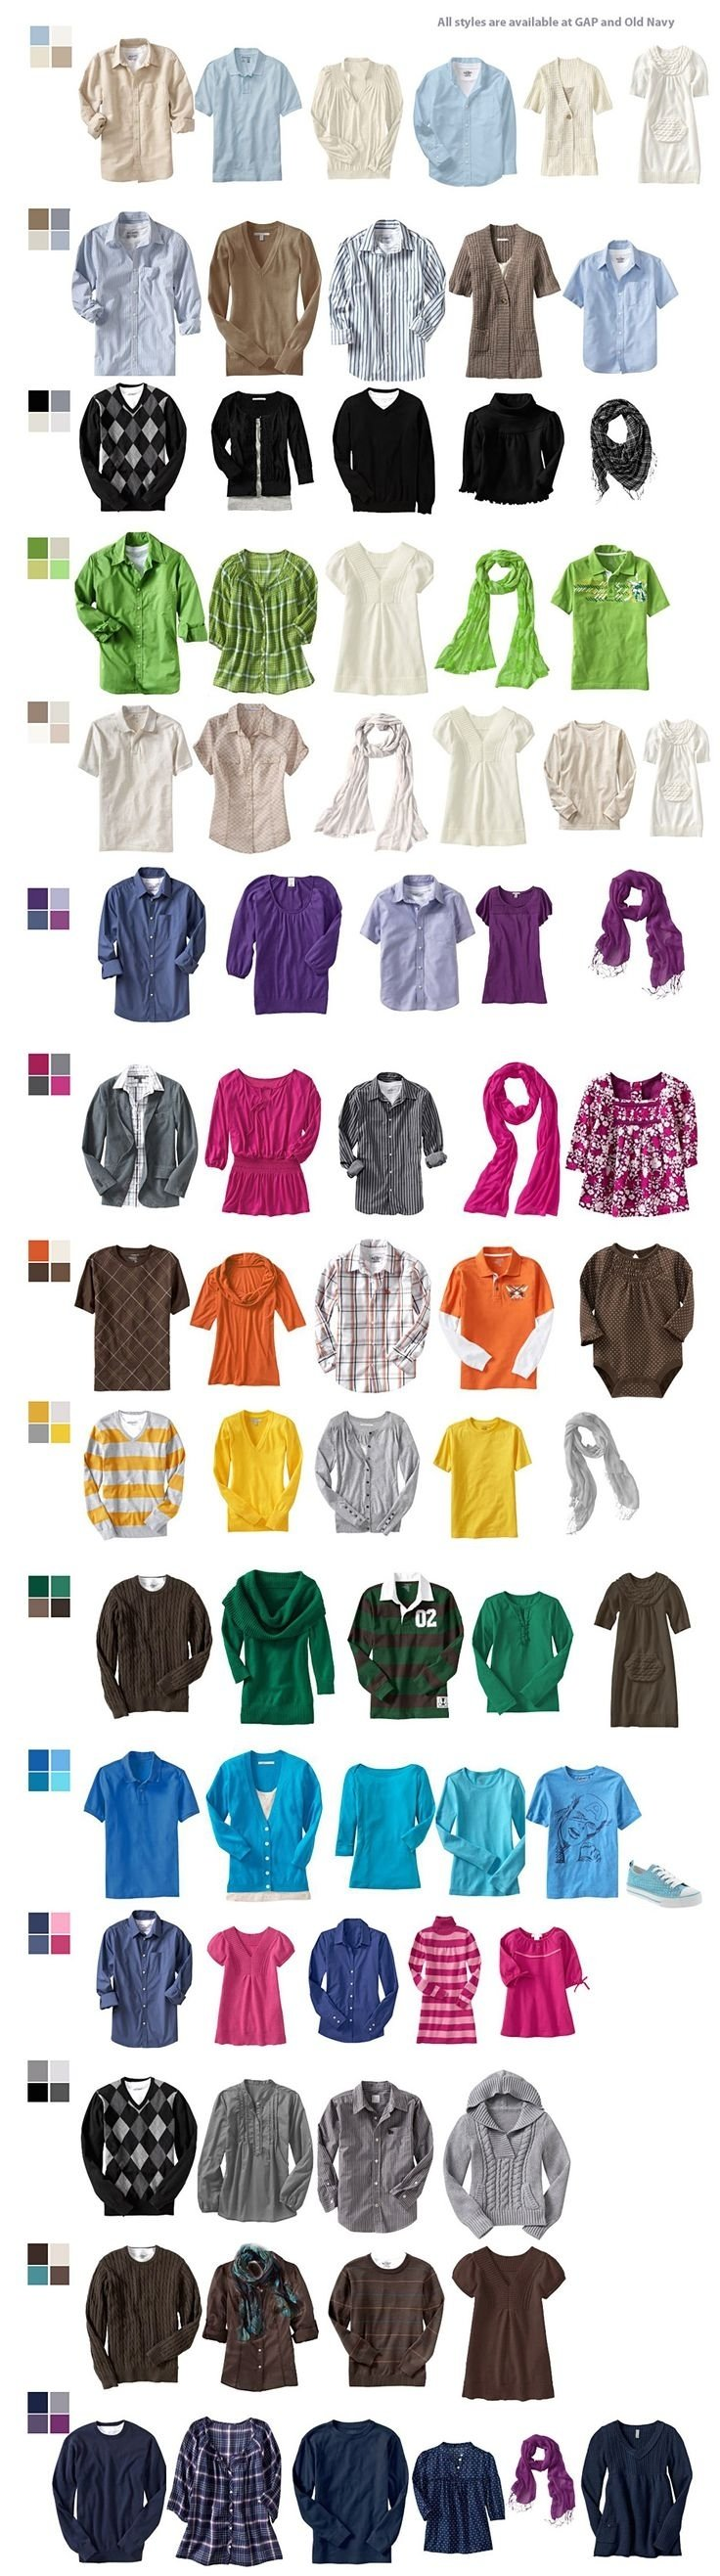 10 Lovable Color Ideas For Family Pictures 106 best family photo wardrobe color palette suggestions images on 1